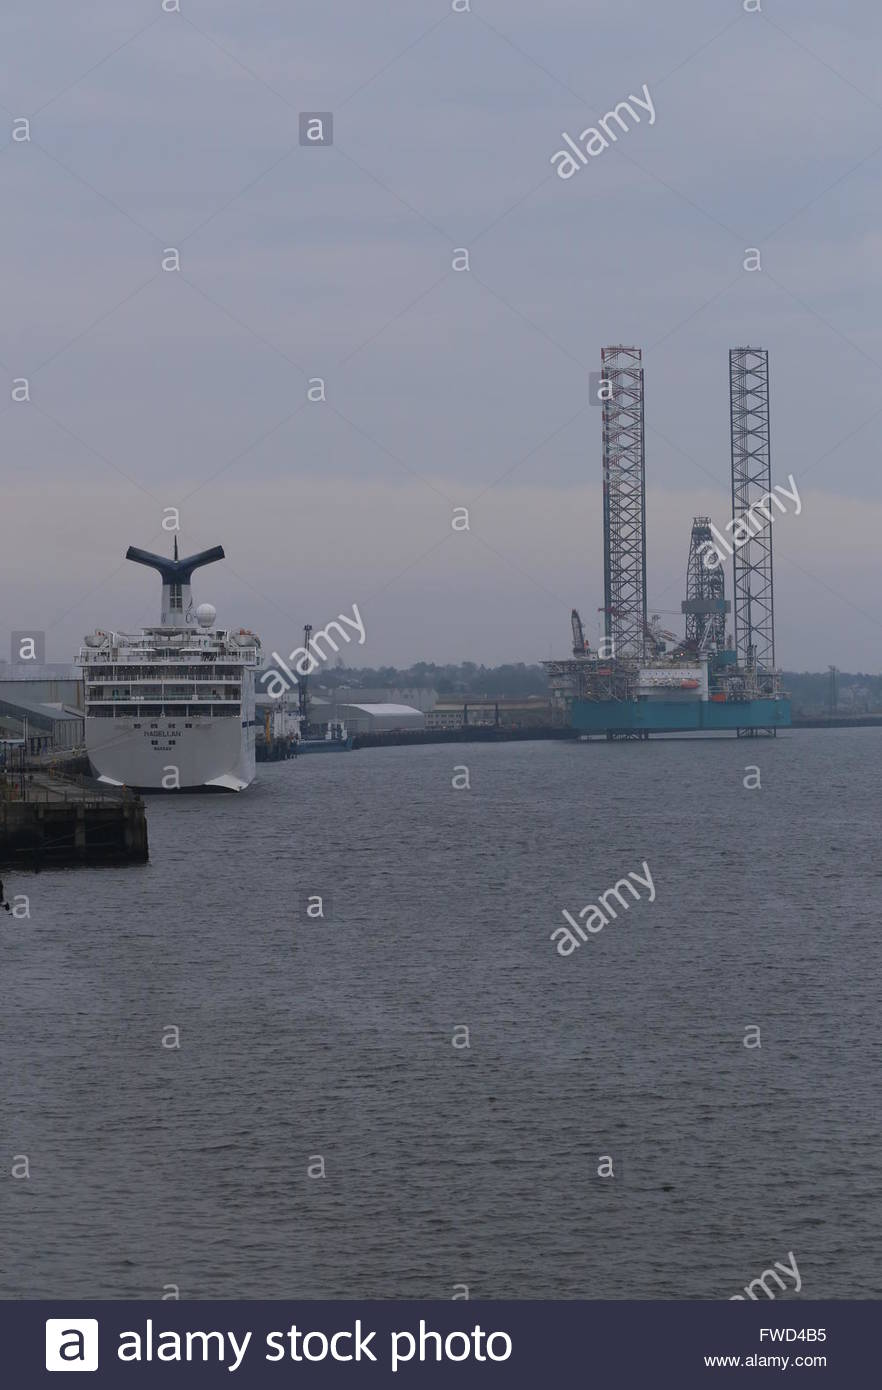 CMV cruise ship Magellan docked and oil rig under repair Dundee Scotland  3rd April 2016 - Stock Image